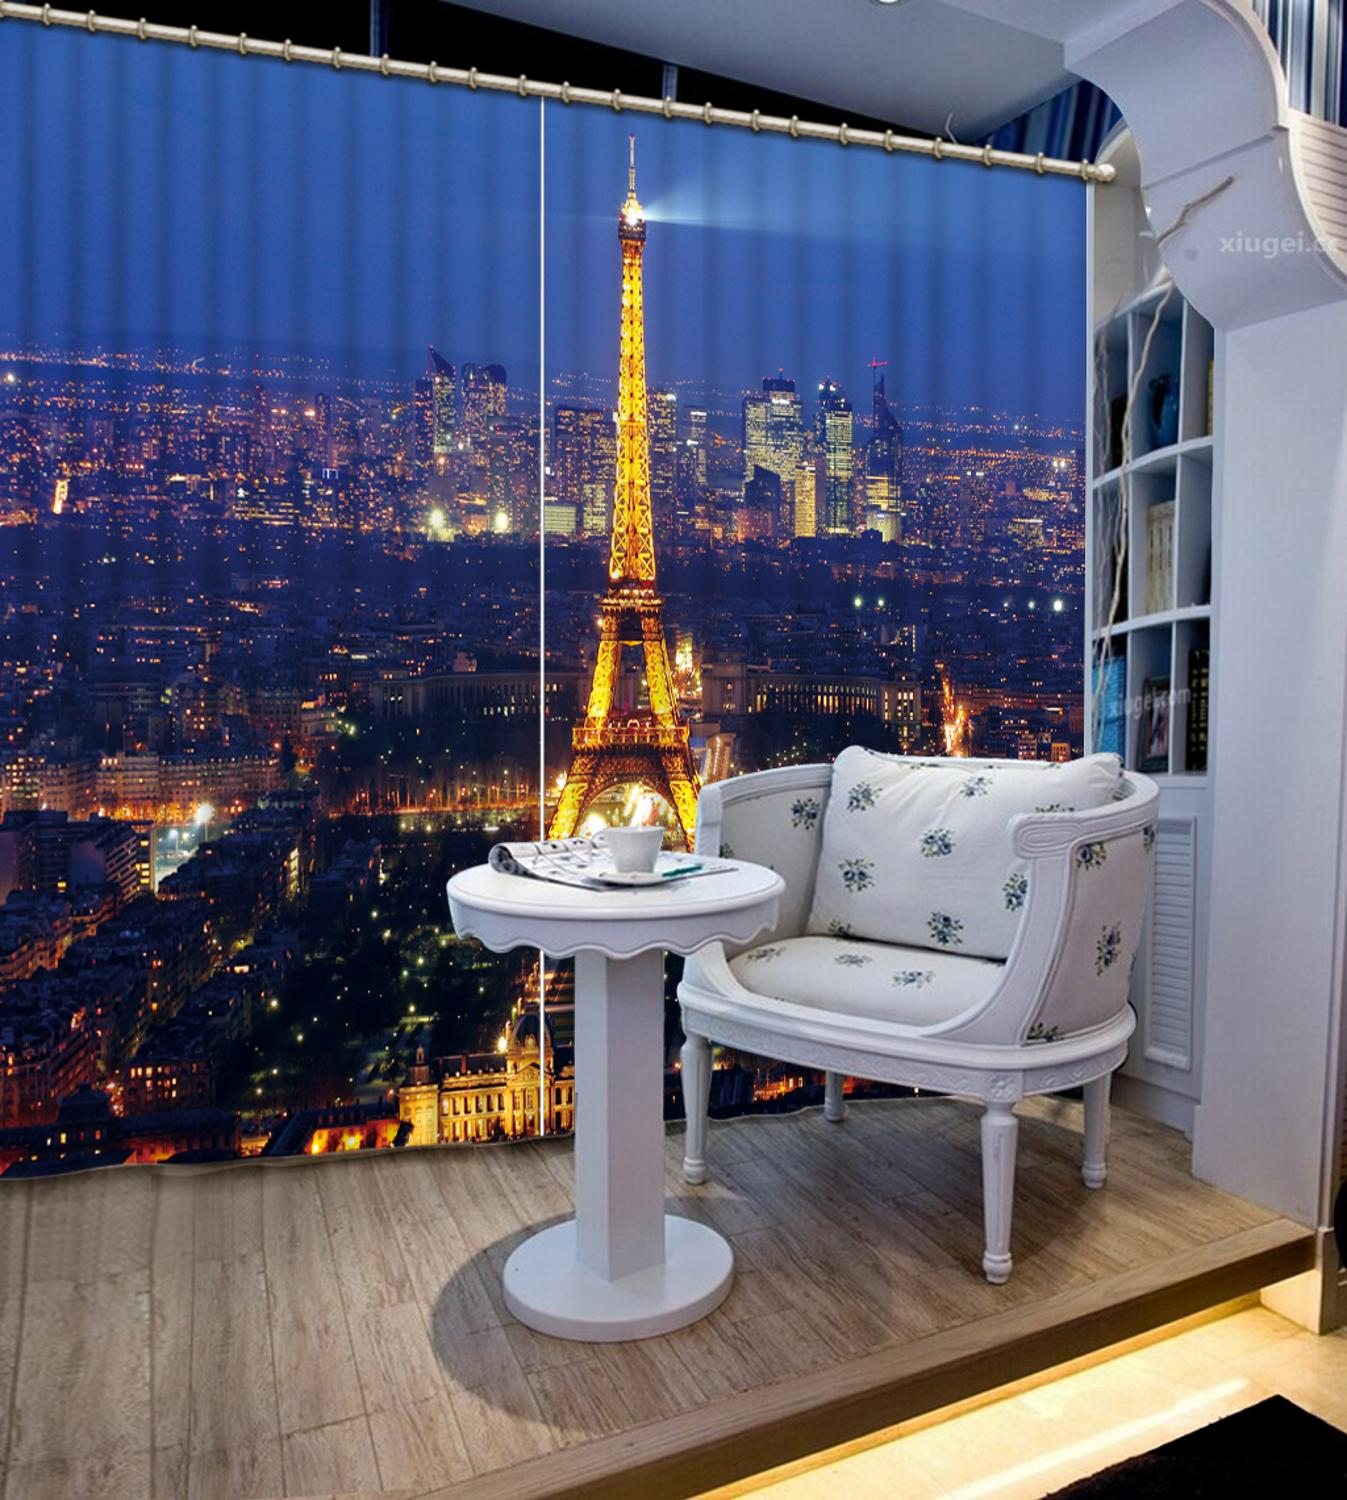 City night scene Curtain Luxury 3D Window Curtain For Living Room tower curtains Blackout curtainCity night scene Curtain Luxury 3D Window Curtain For Living Room tower curtains Blackout curtain